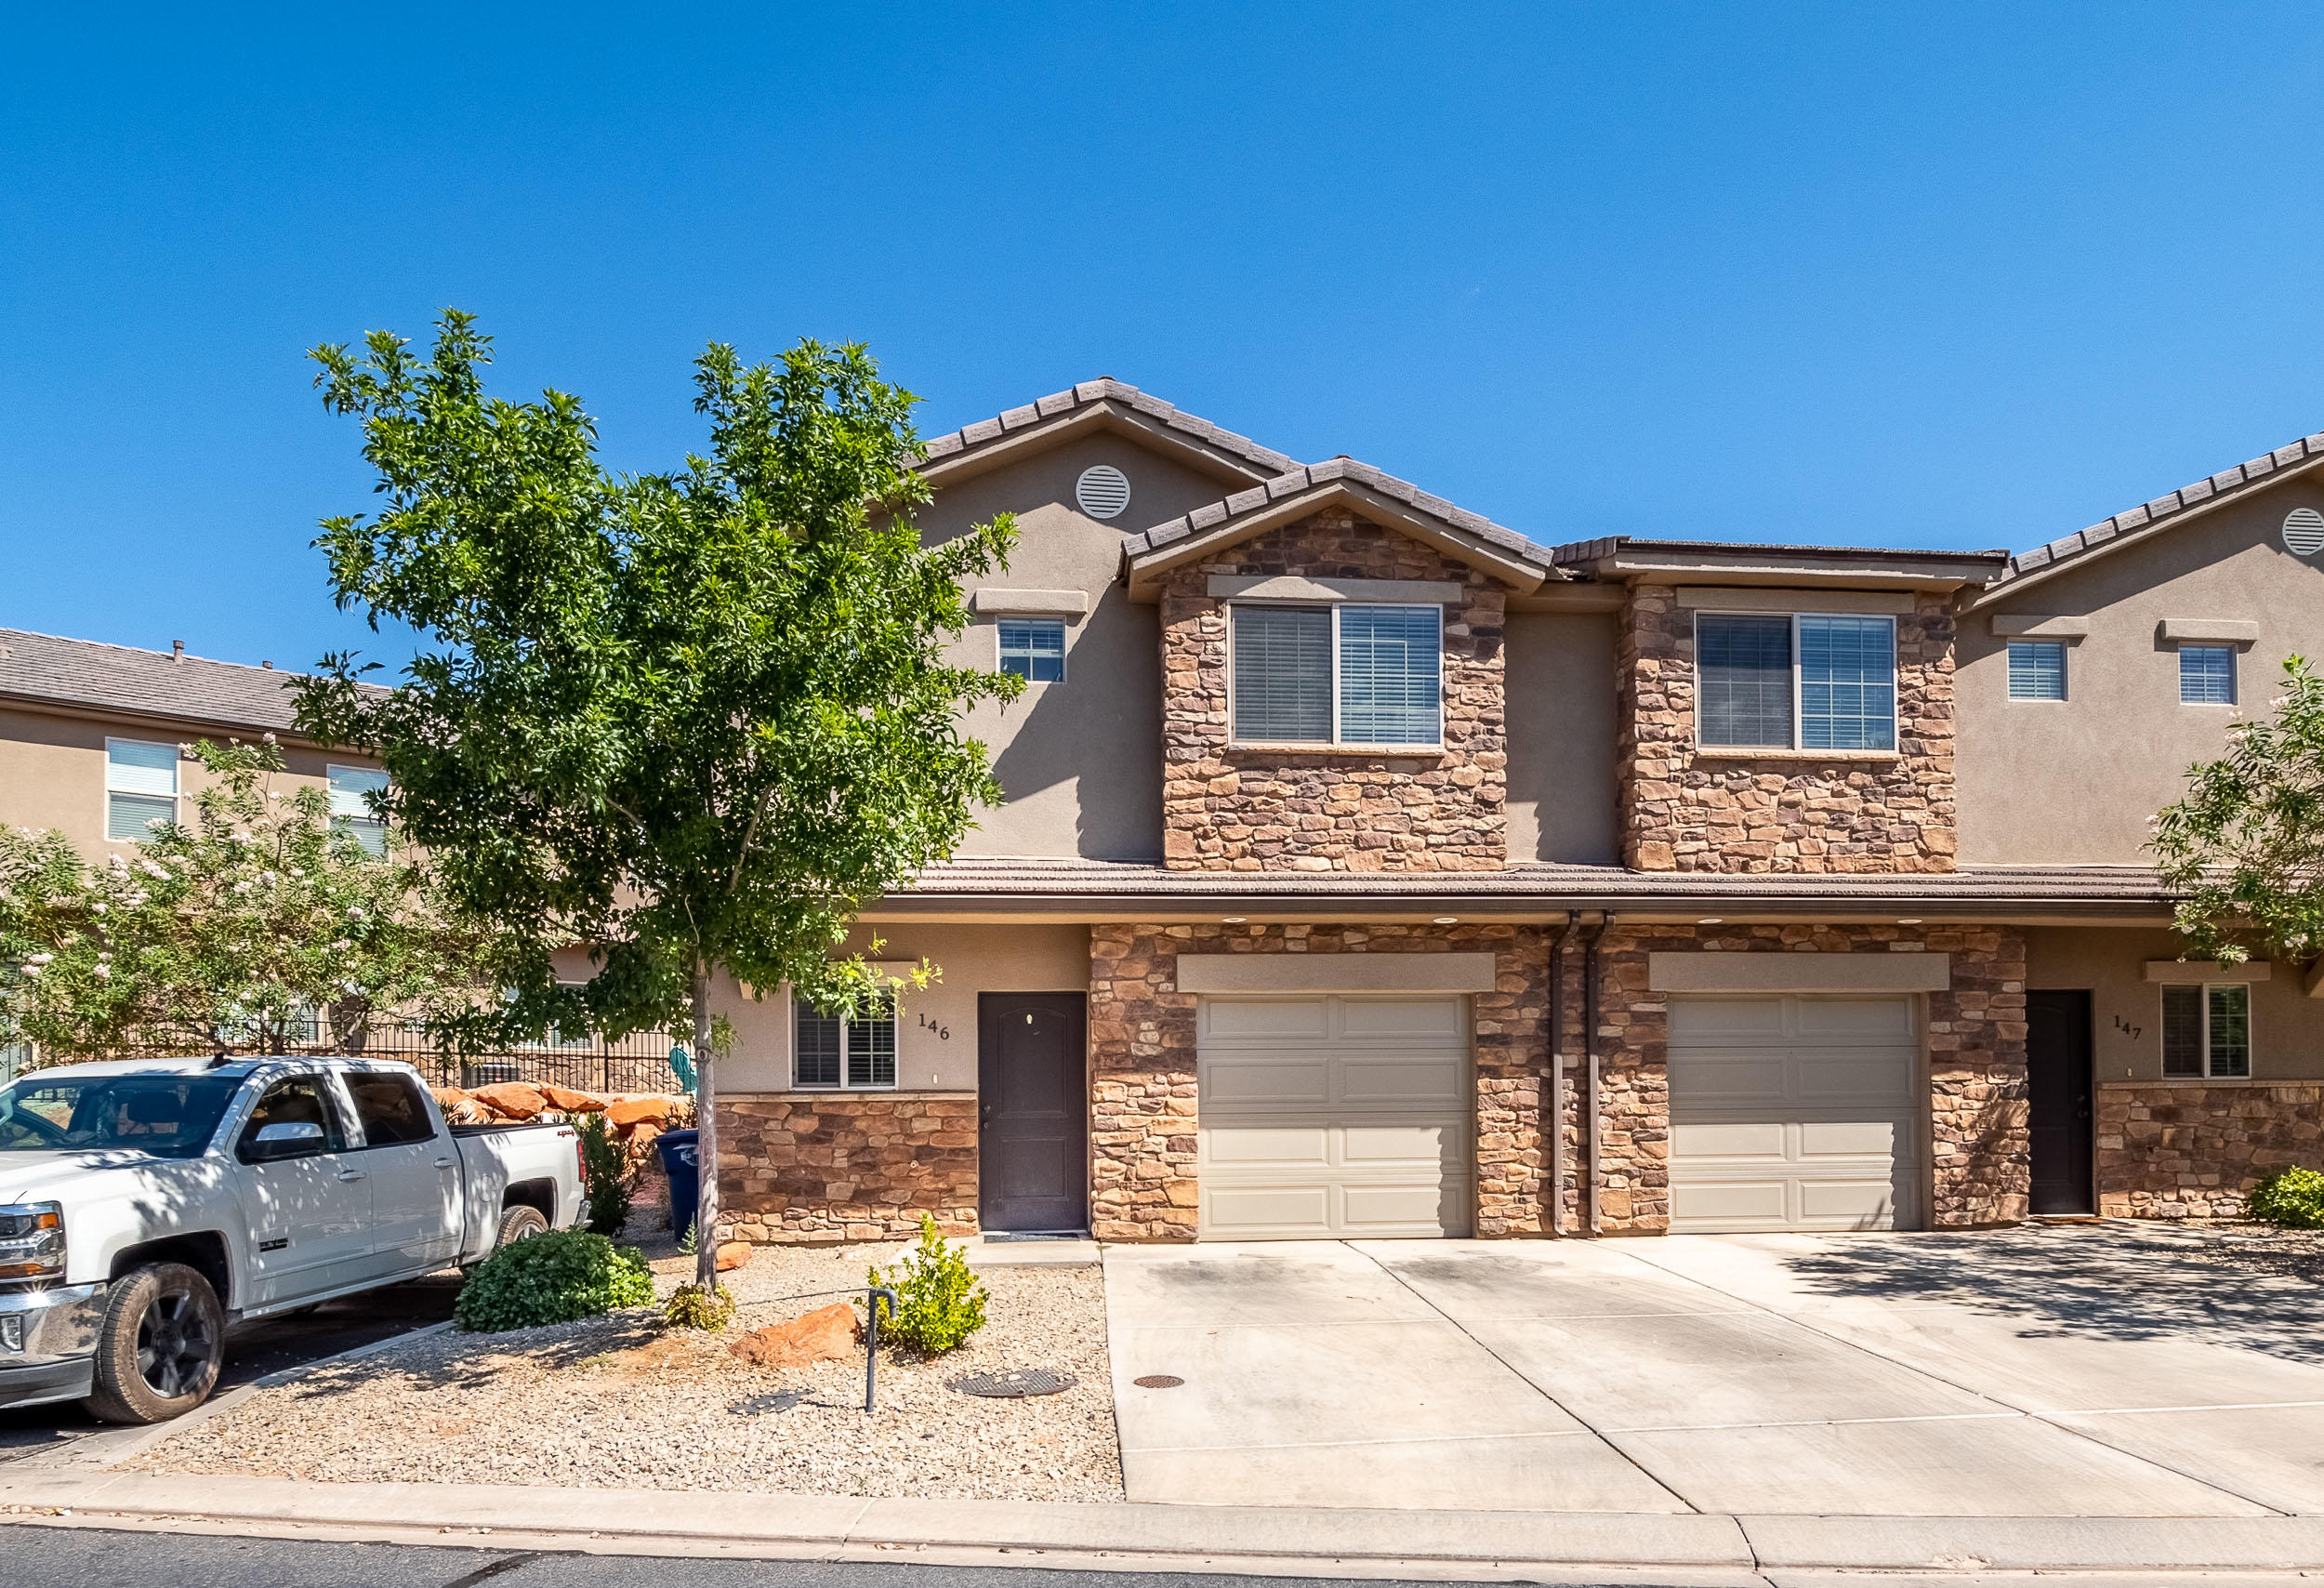 370 W Buena Vista Blvd Unit 146, Washington Ut 84780